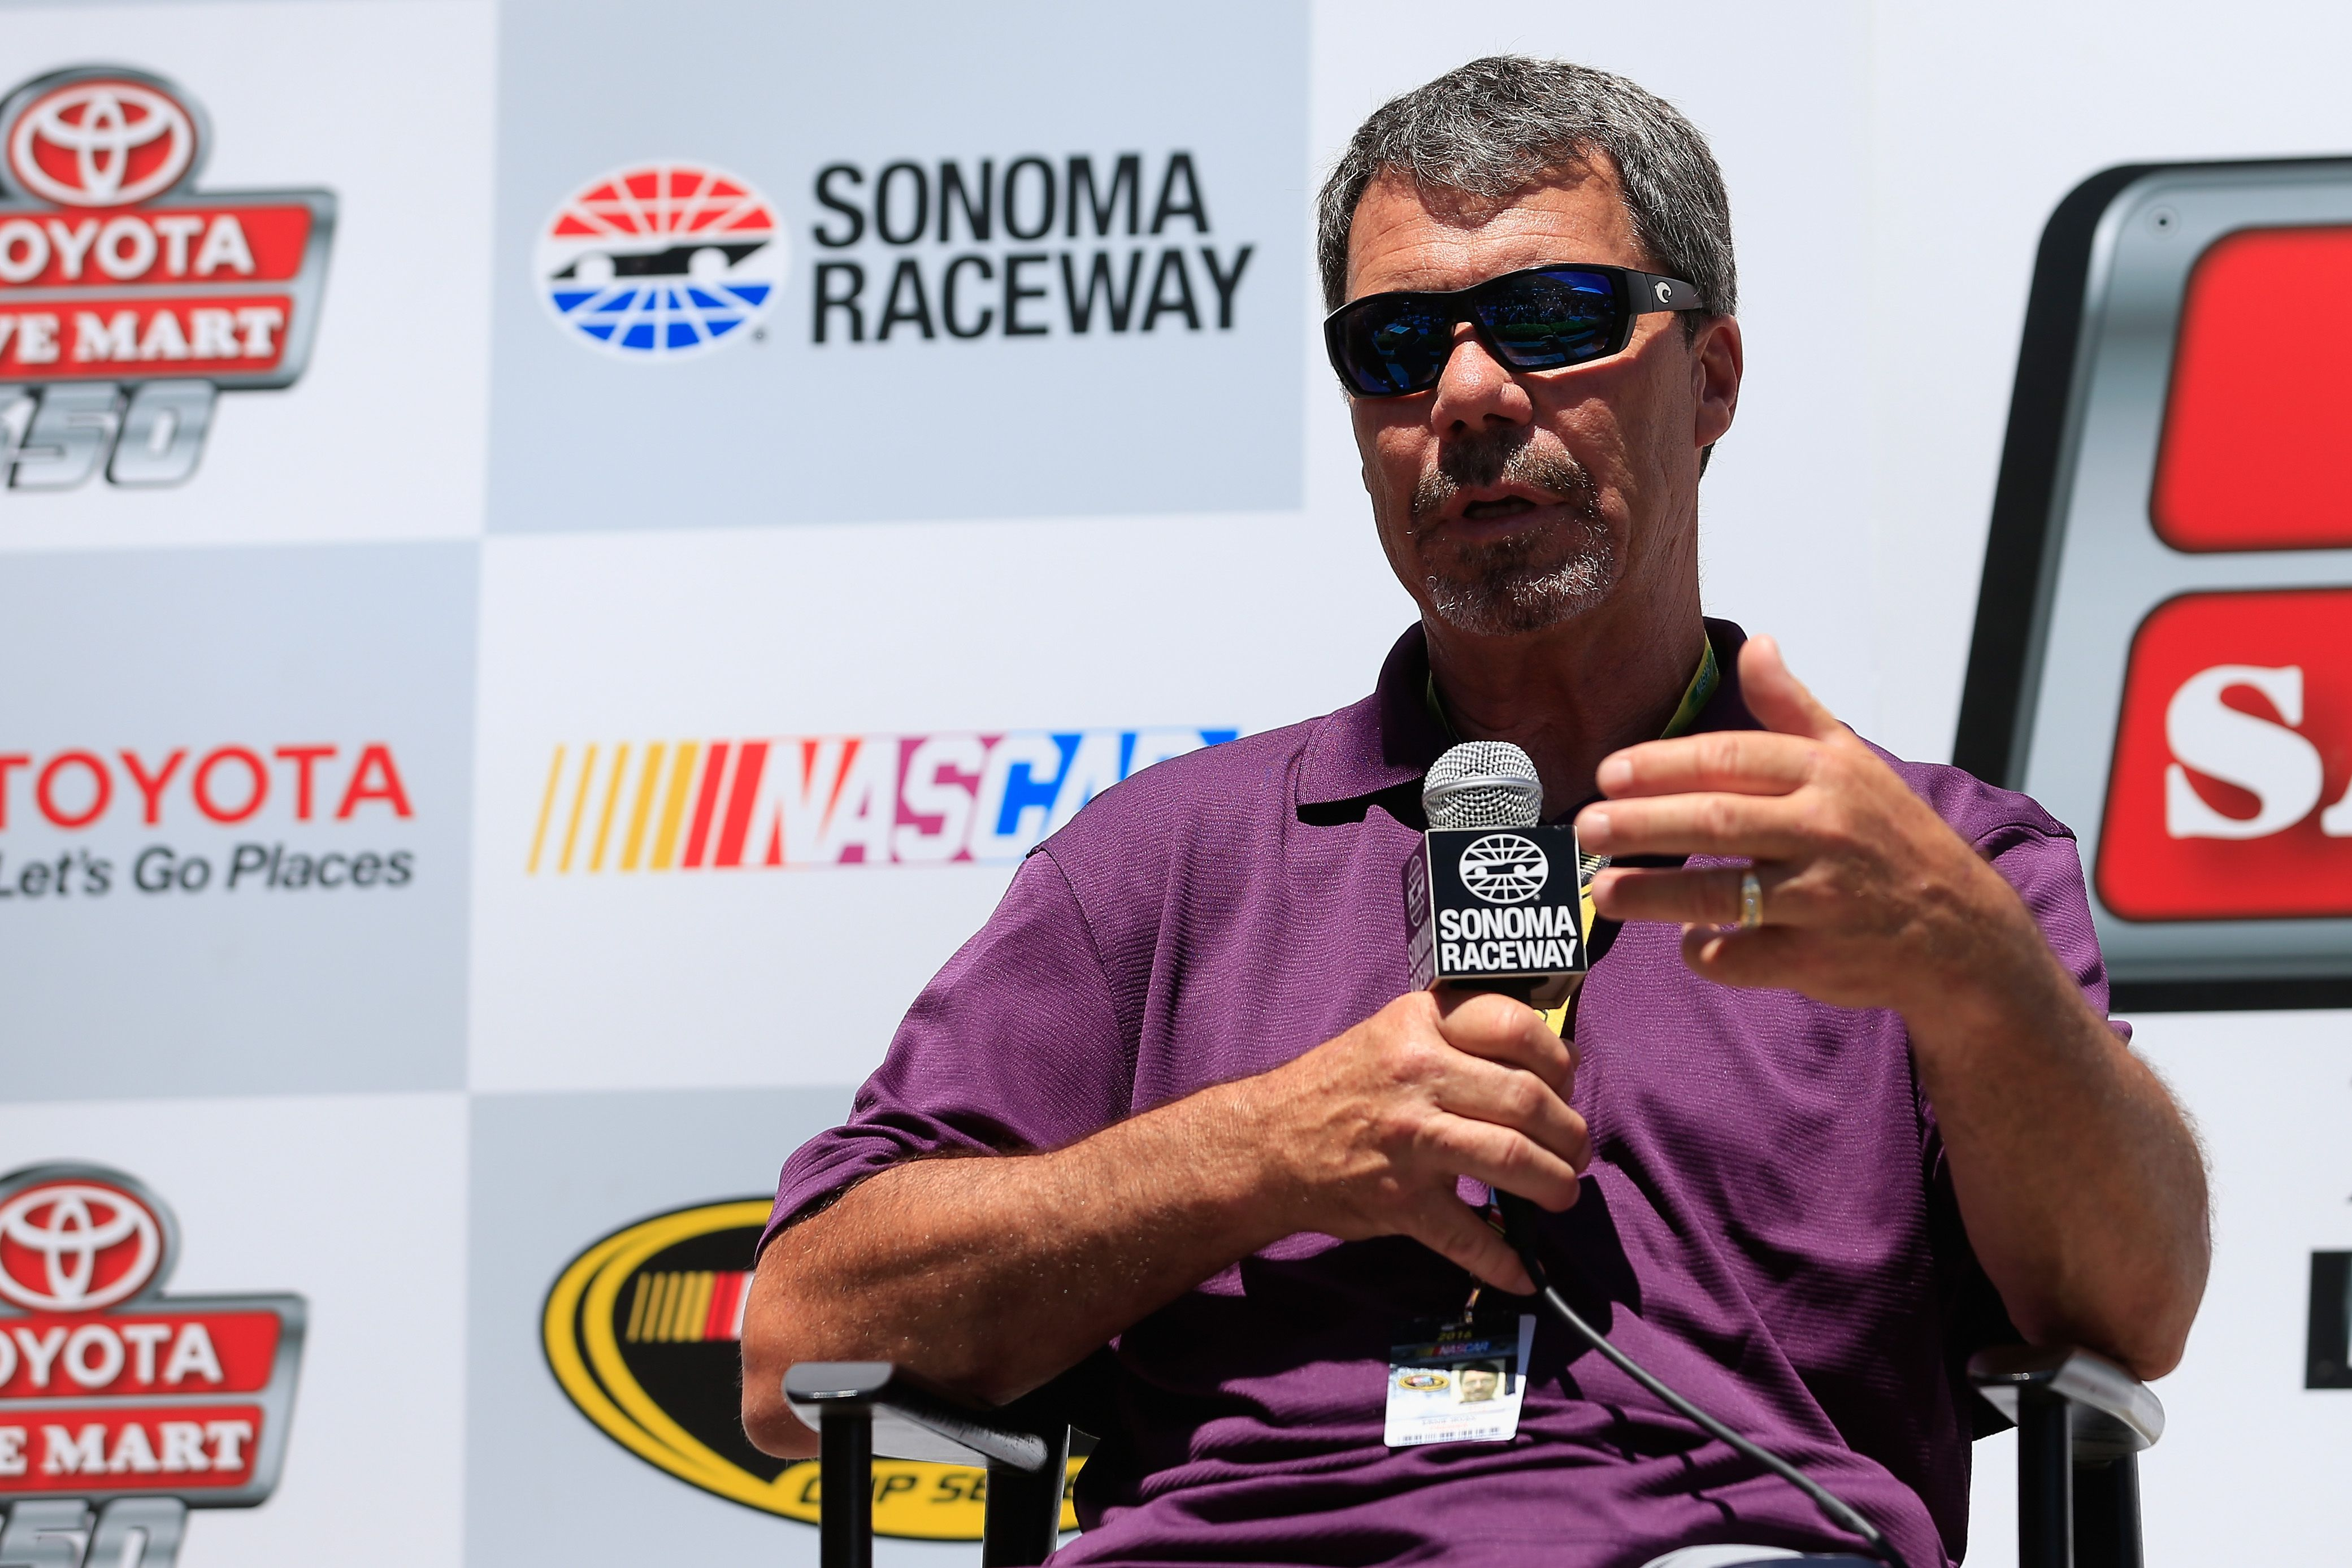 Ernie Irvan at the Sonoma Raceway Wall Of Fame after practice for the NASCAR Sprint Cup Series Toyota/Save Mart 350 at Sonoma Raceway on June 24, 2016 | Photo: Getty Images